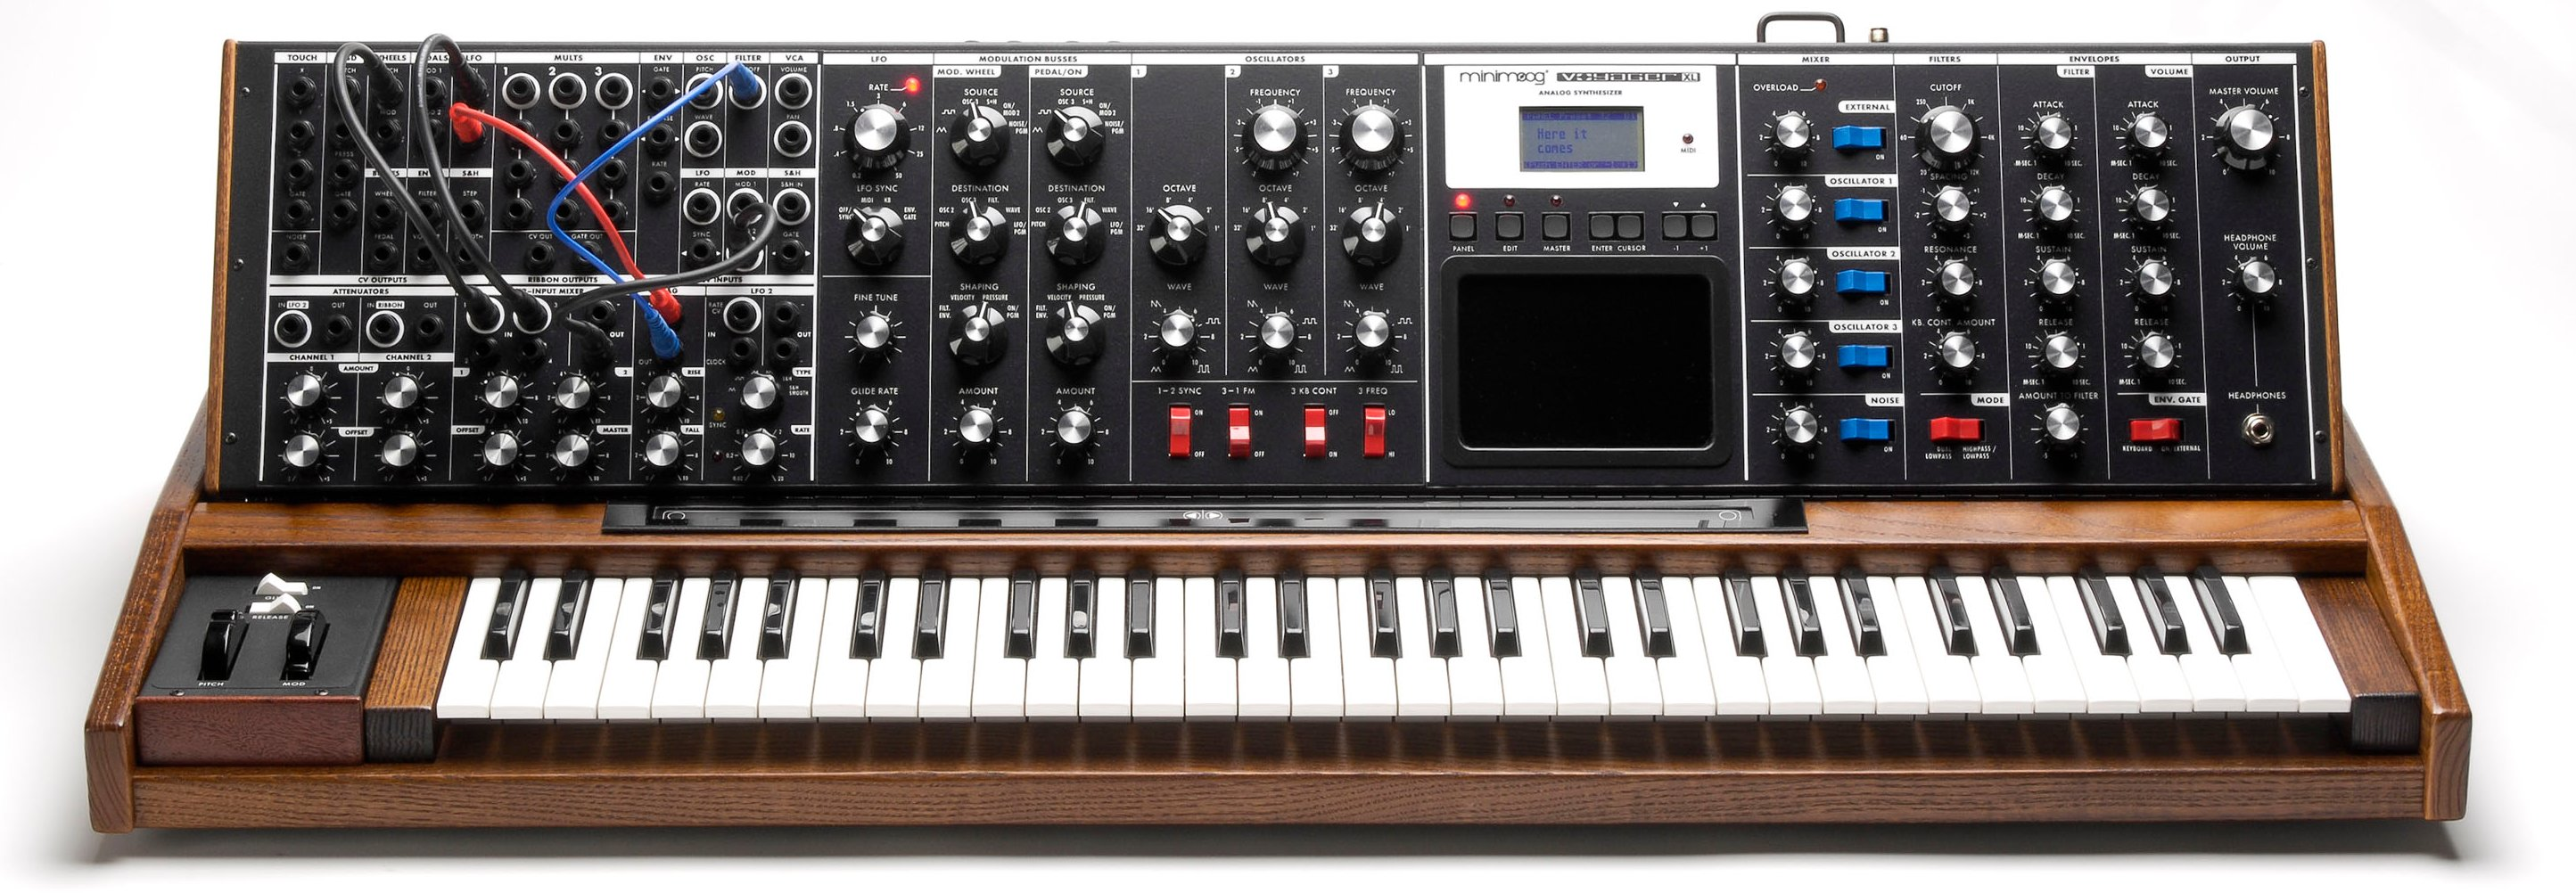 first look  minimoog voyager xl  now official  is a new